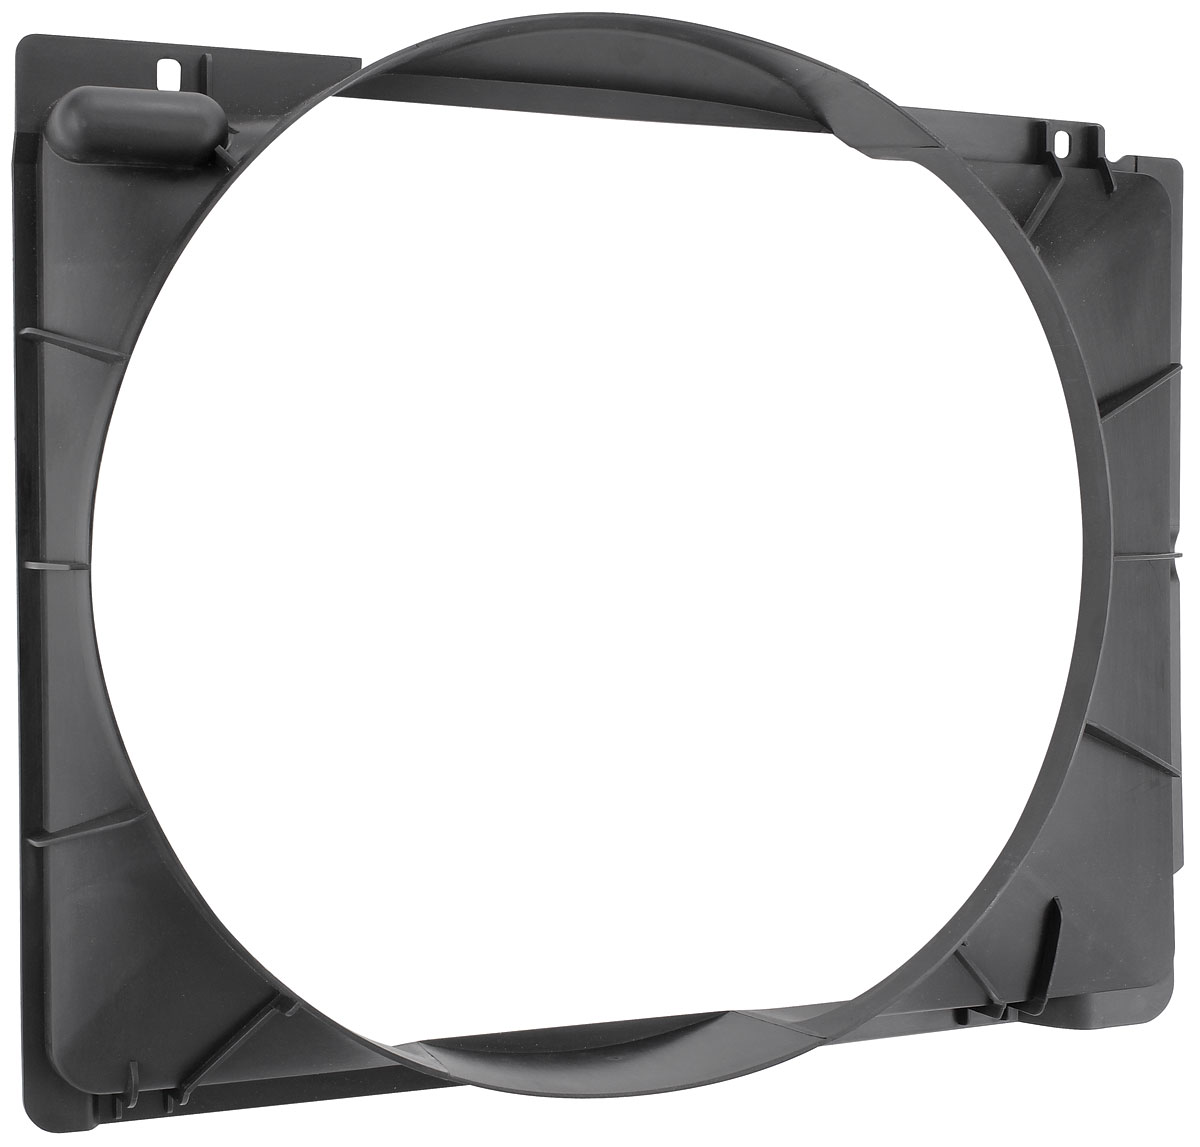 Fan Shroud, Big-Block plastic-molded